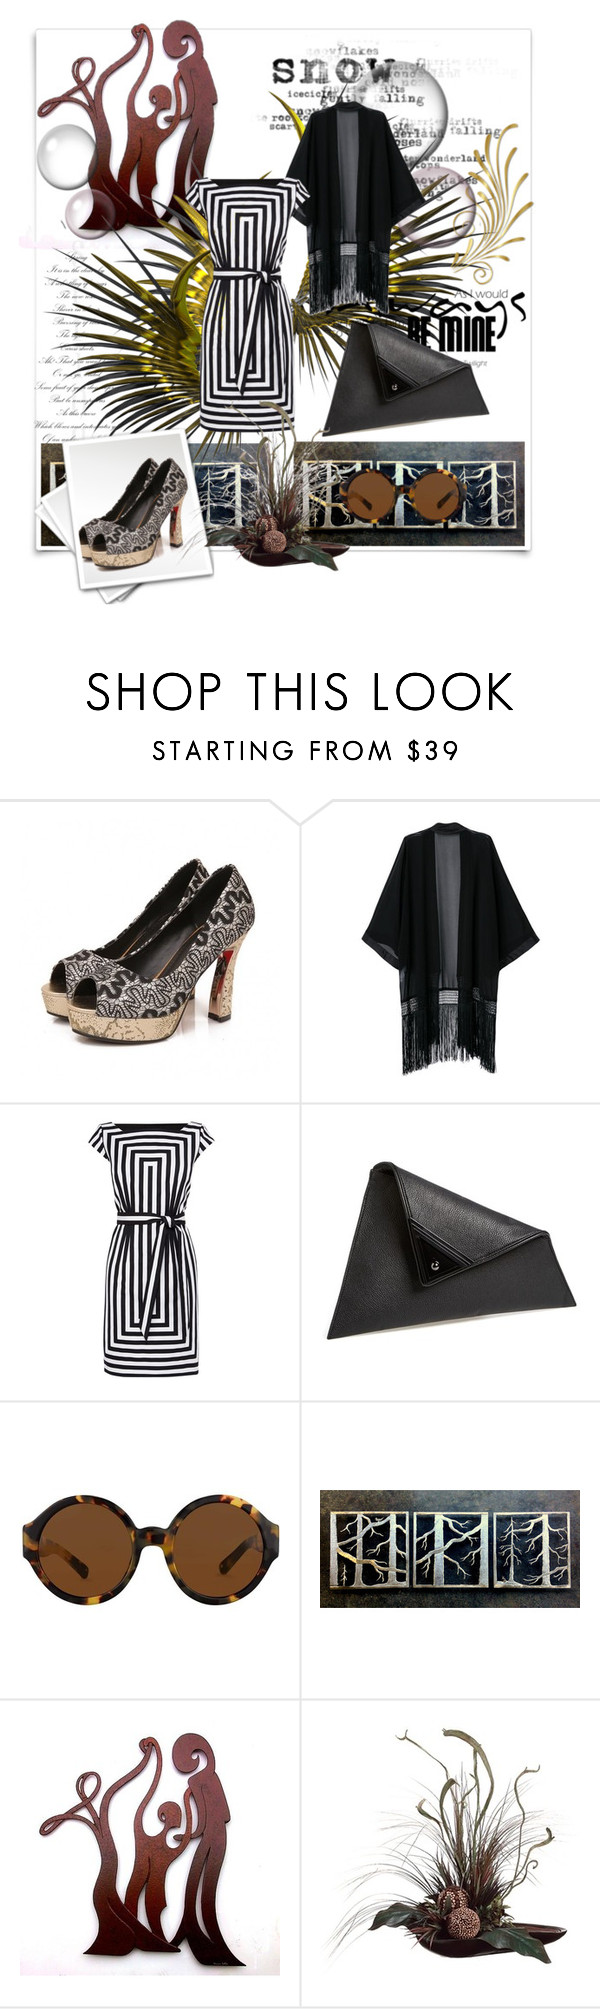 """""""Happy New Year!!!!"""" by allhqfashion ❤ liked on Polyvore featuring McGuire, Karen Millen, Sondra Roberts and Bernard Collin"""